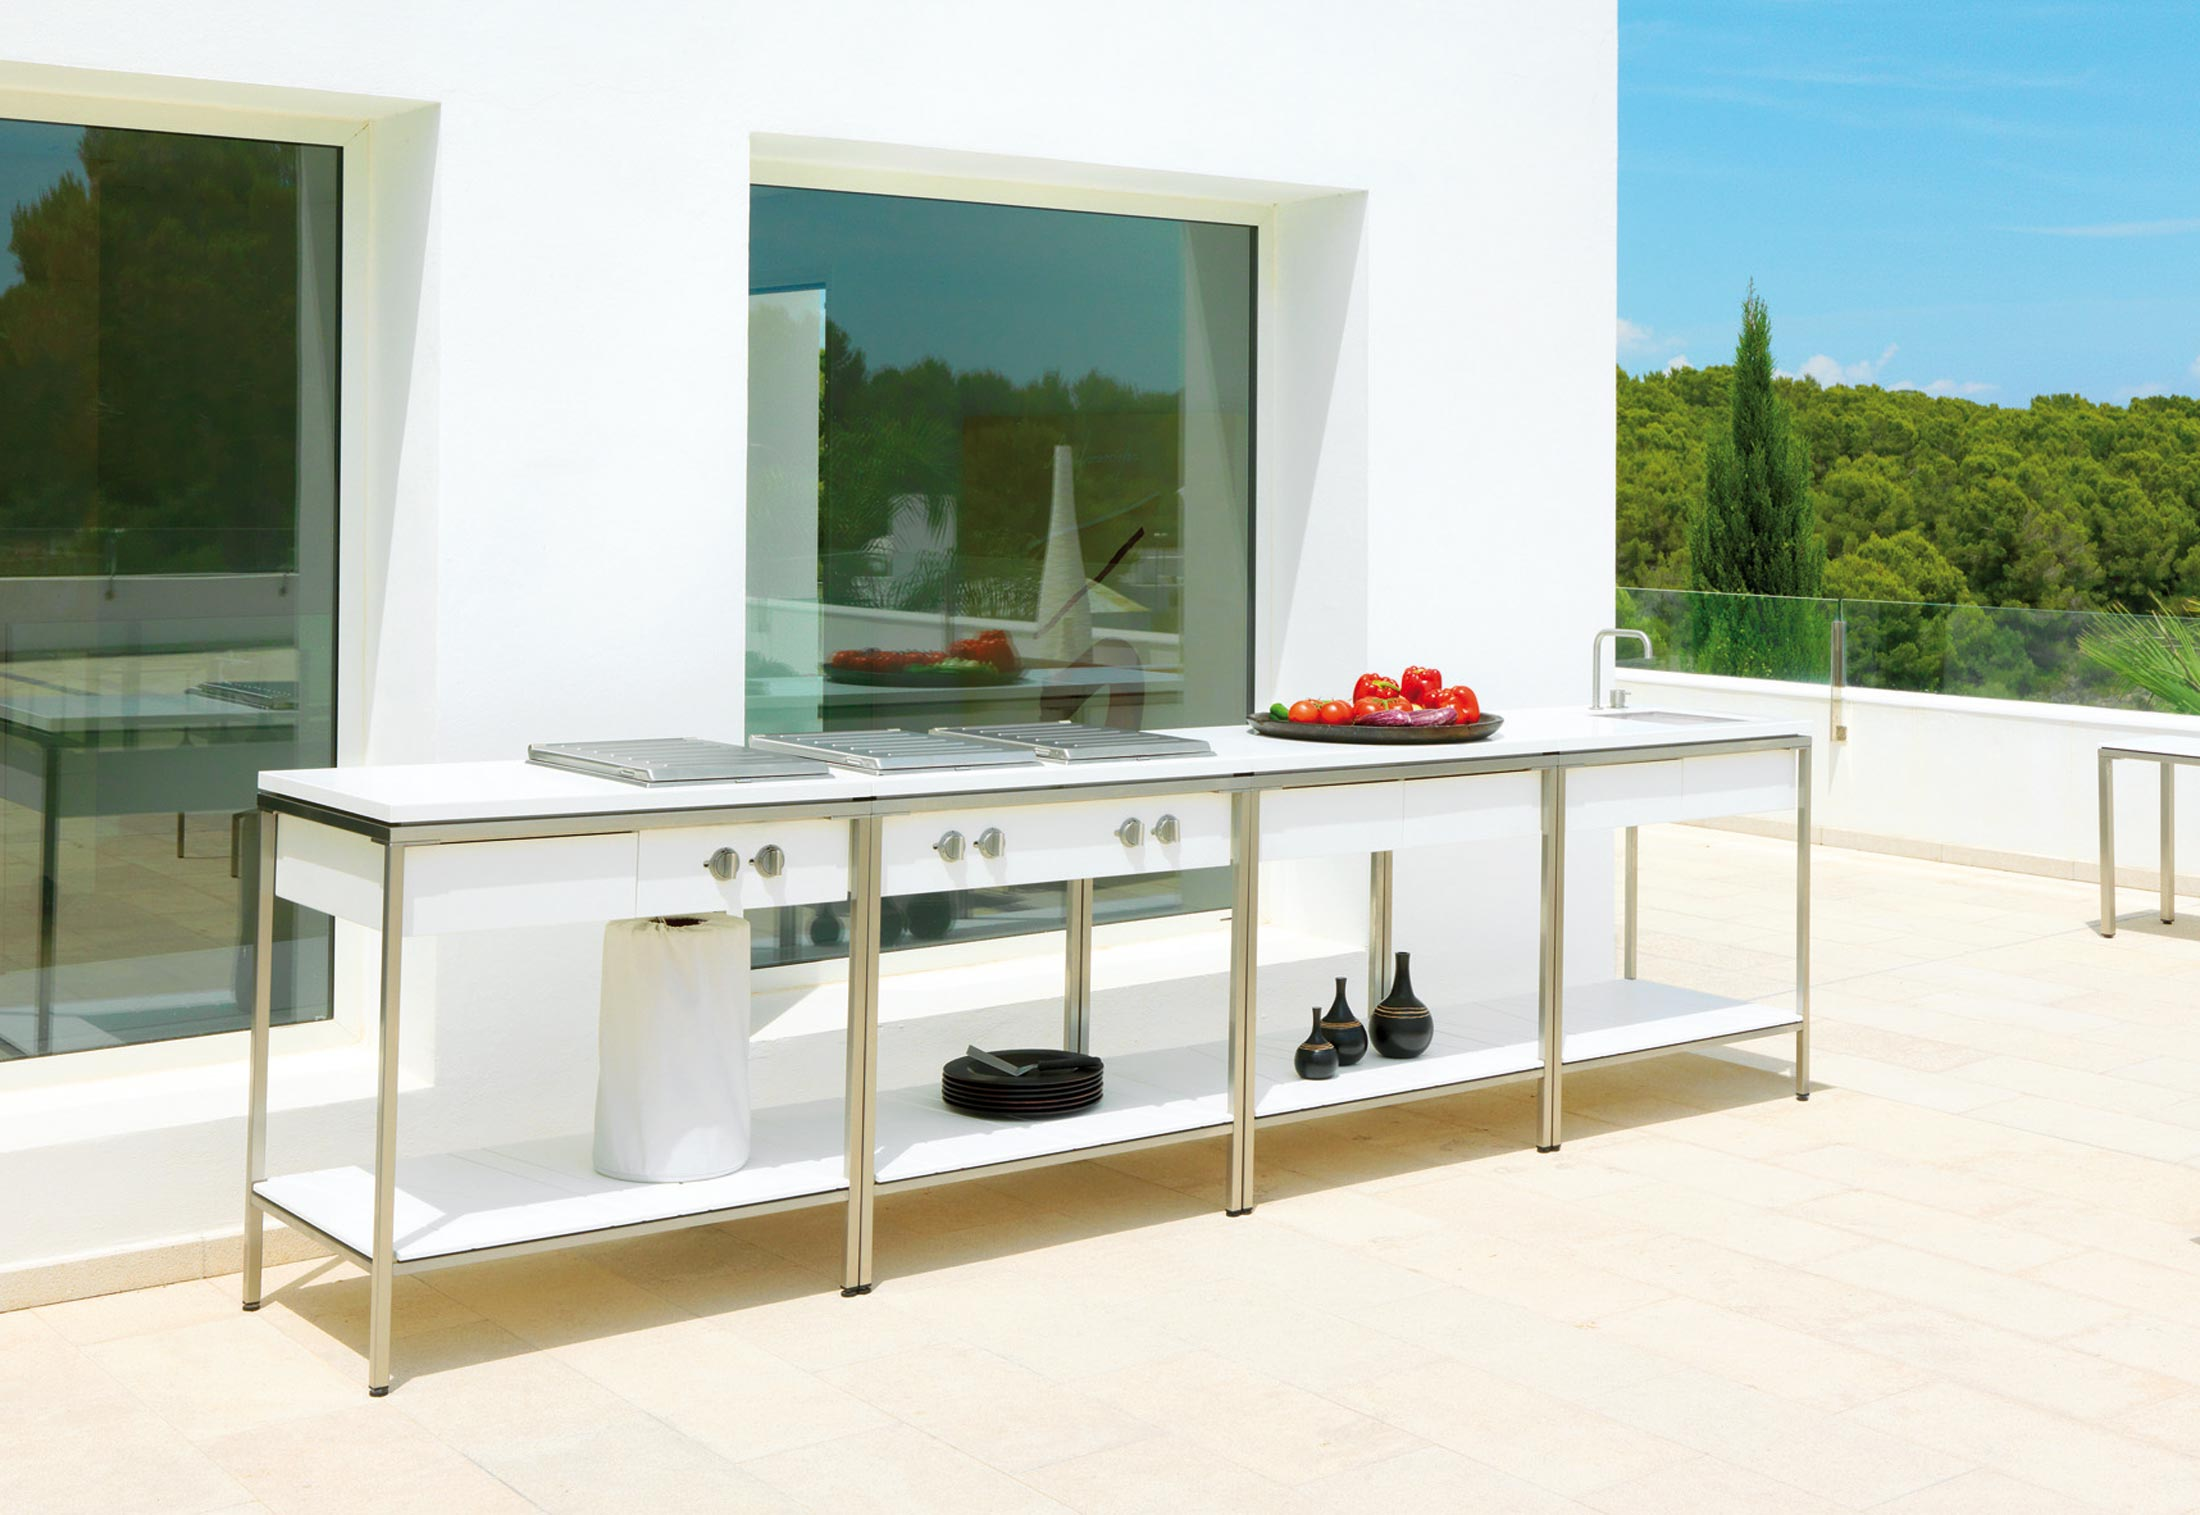 Outdoor kitchen sink modul by viteo stylepark - Cuisine ete exterieur ...